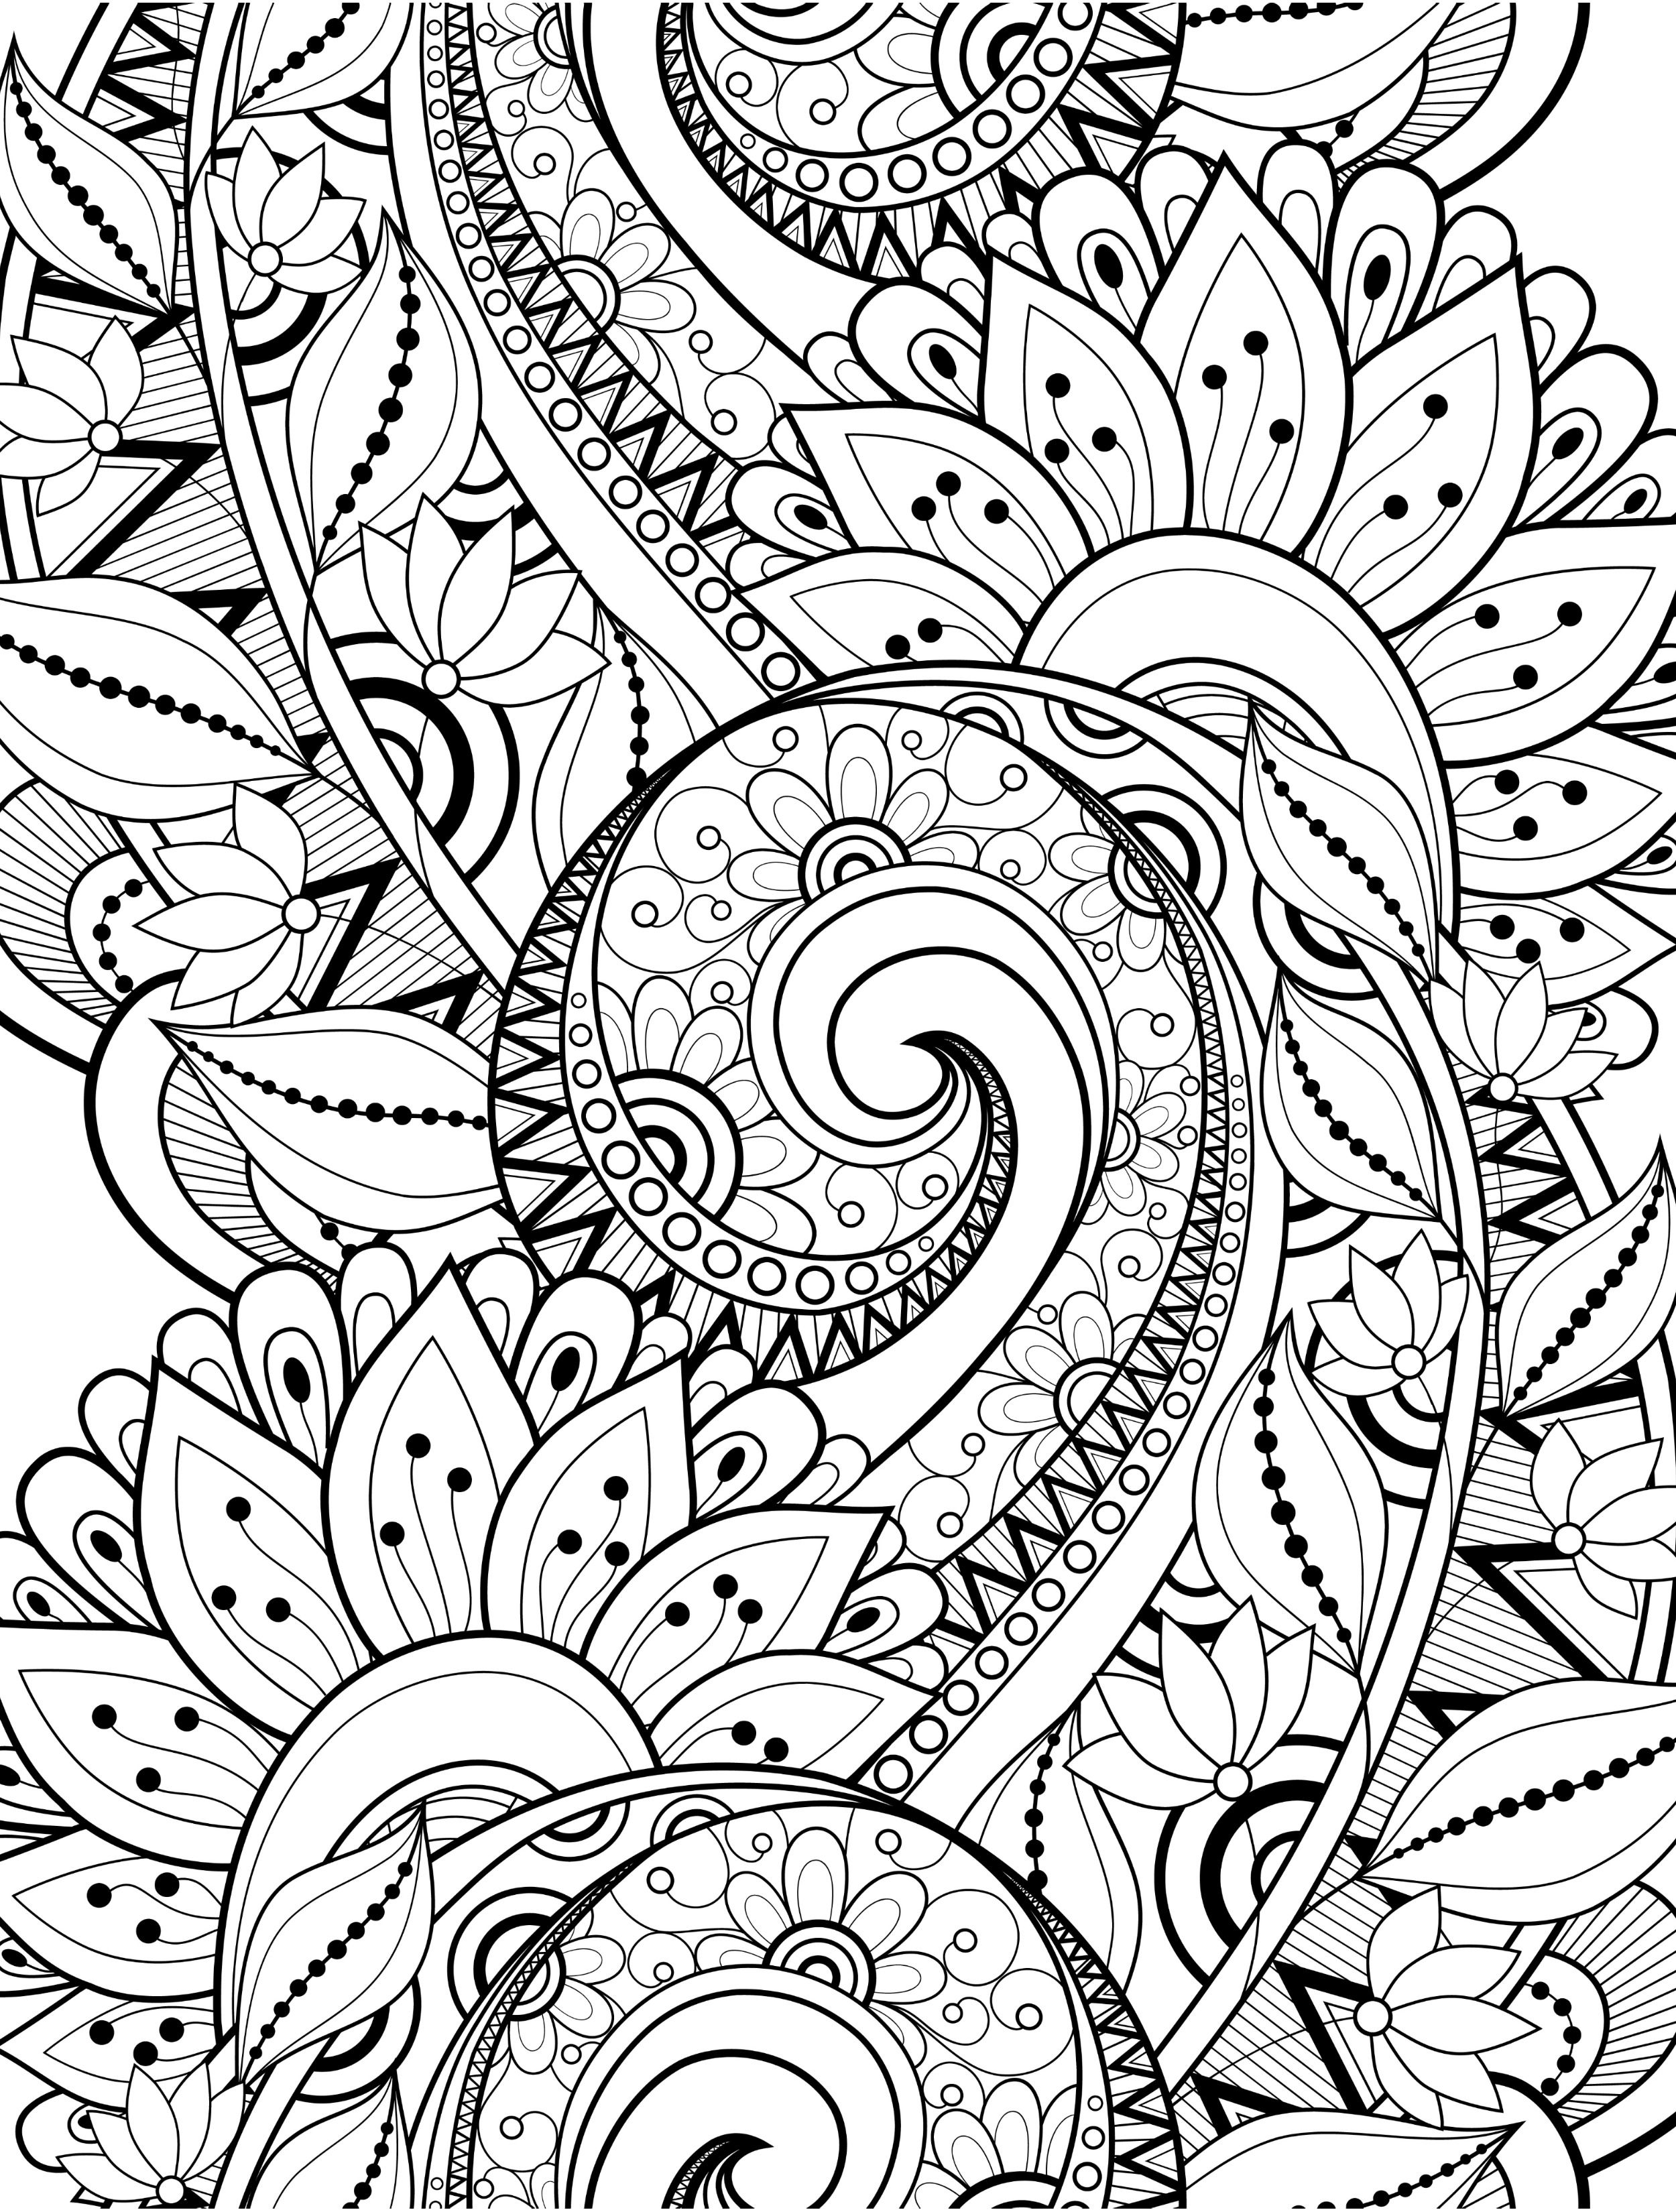 15 CRAZY Busy Coloring Pages for Adults | sketching | Pinterest ...